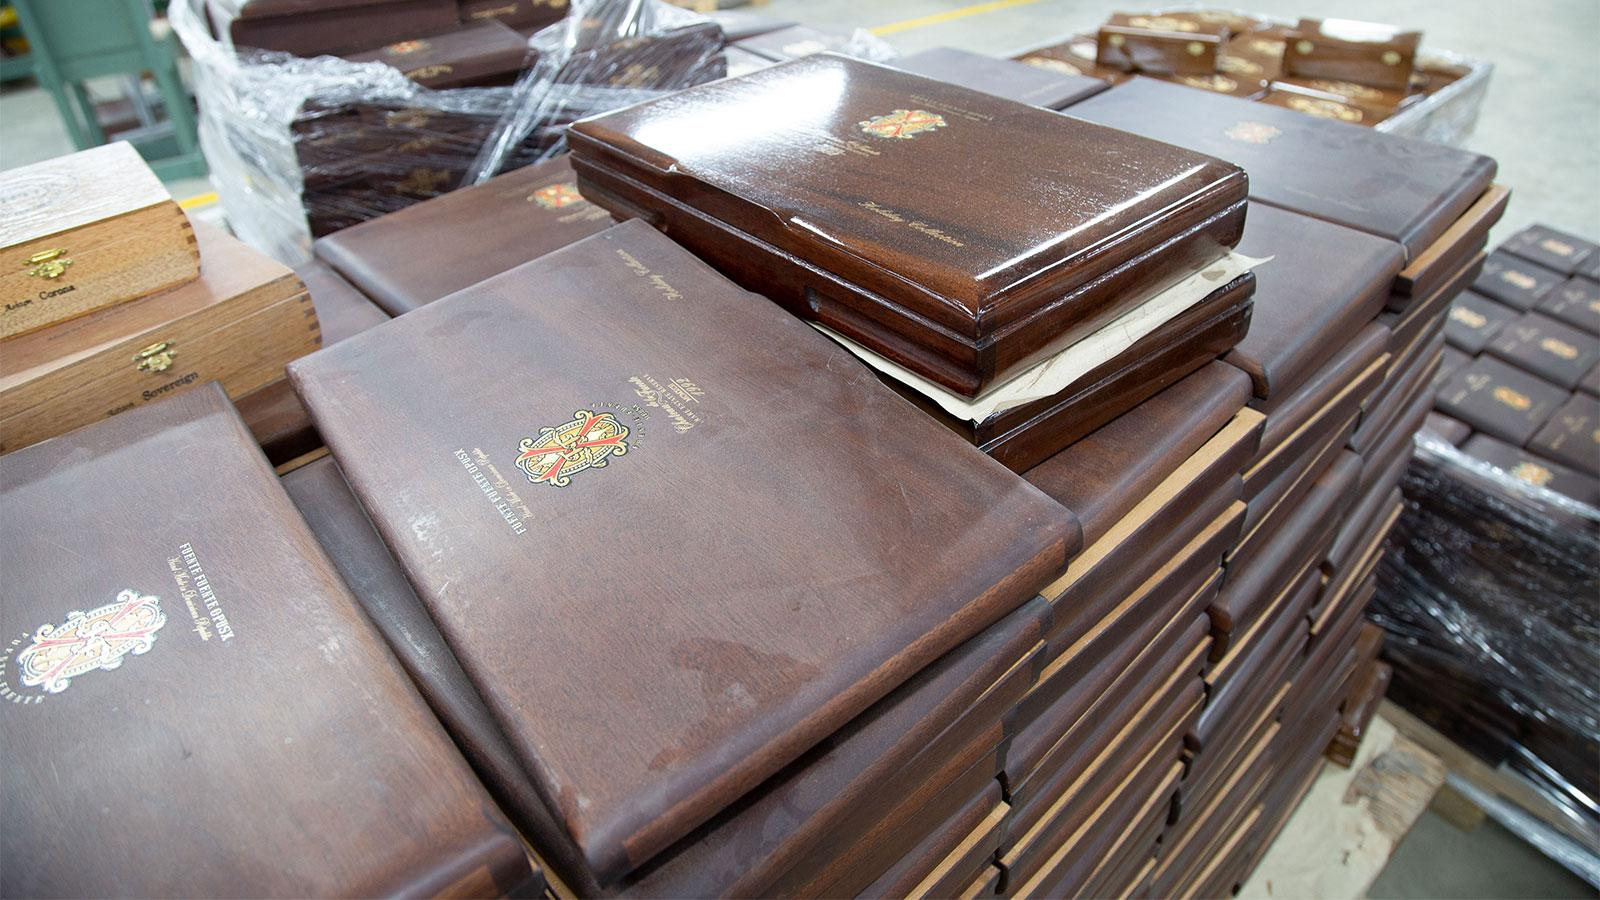 A stack of Fuente Fuente OpusX boxes that will soon be lacquered like the shiny one on top.